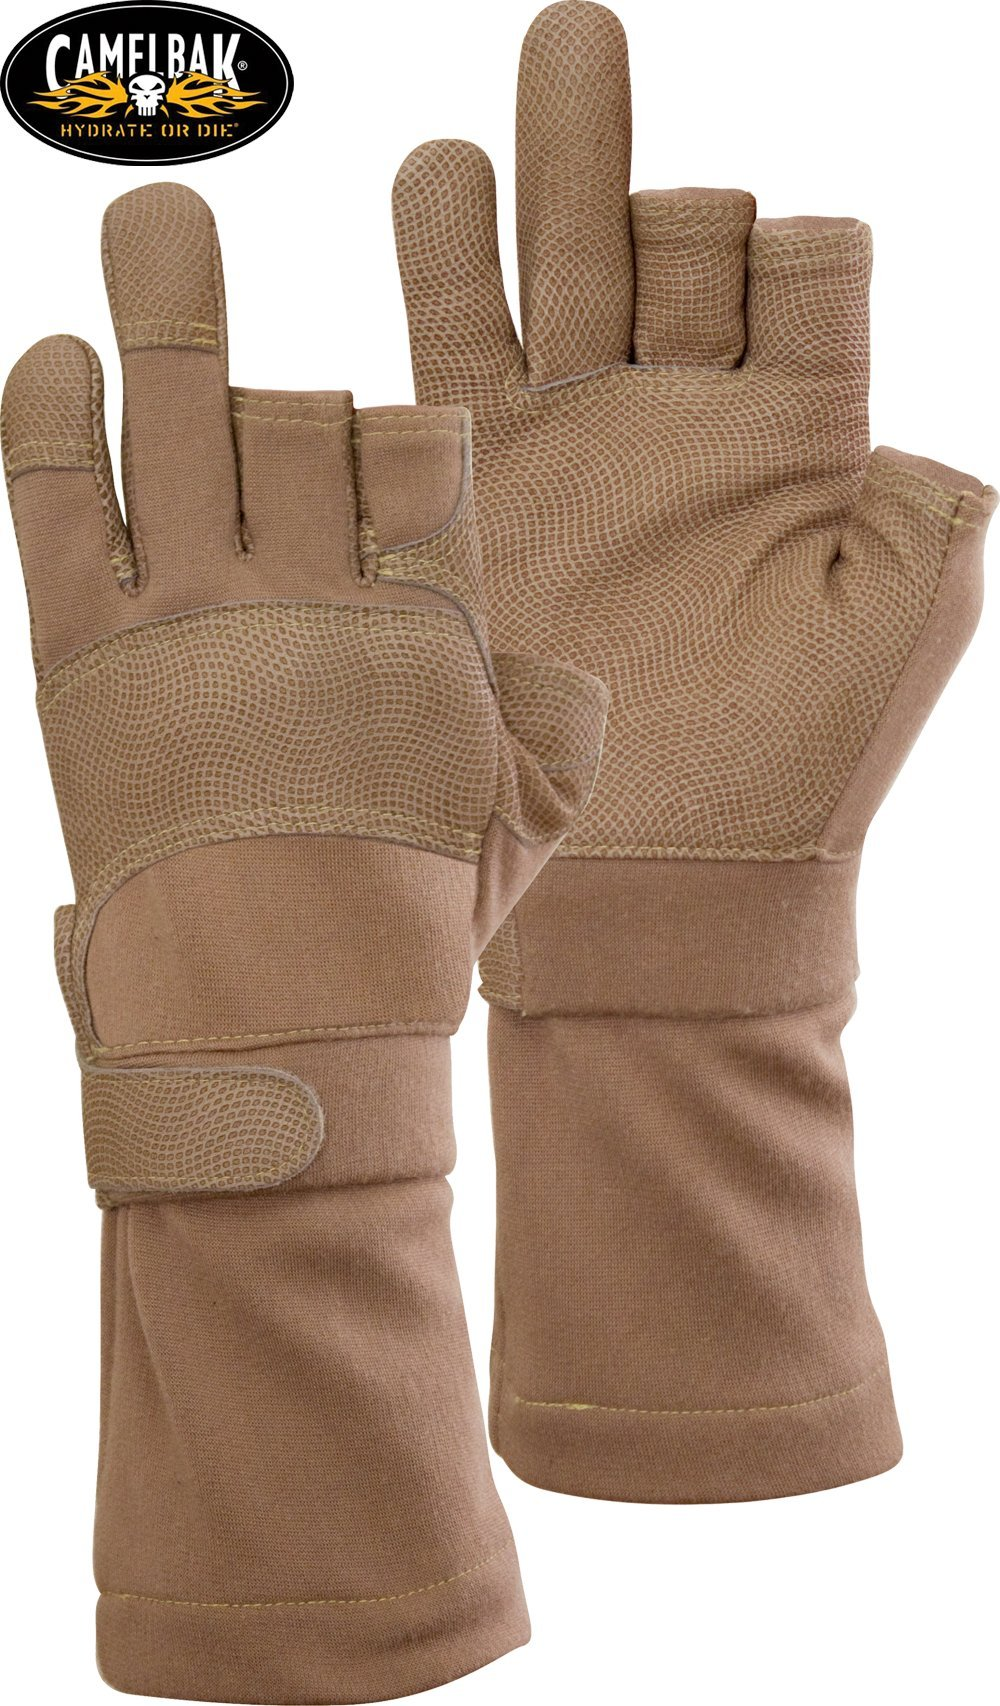 Gloves, Camelbak Max Grip MX3, DFAR, Desert Tan, Size M by CamelBak